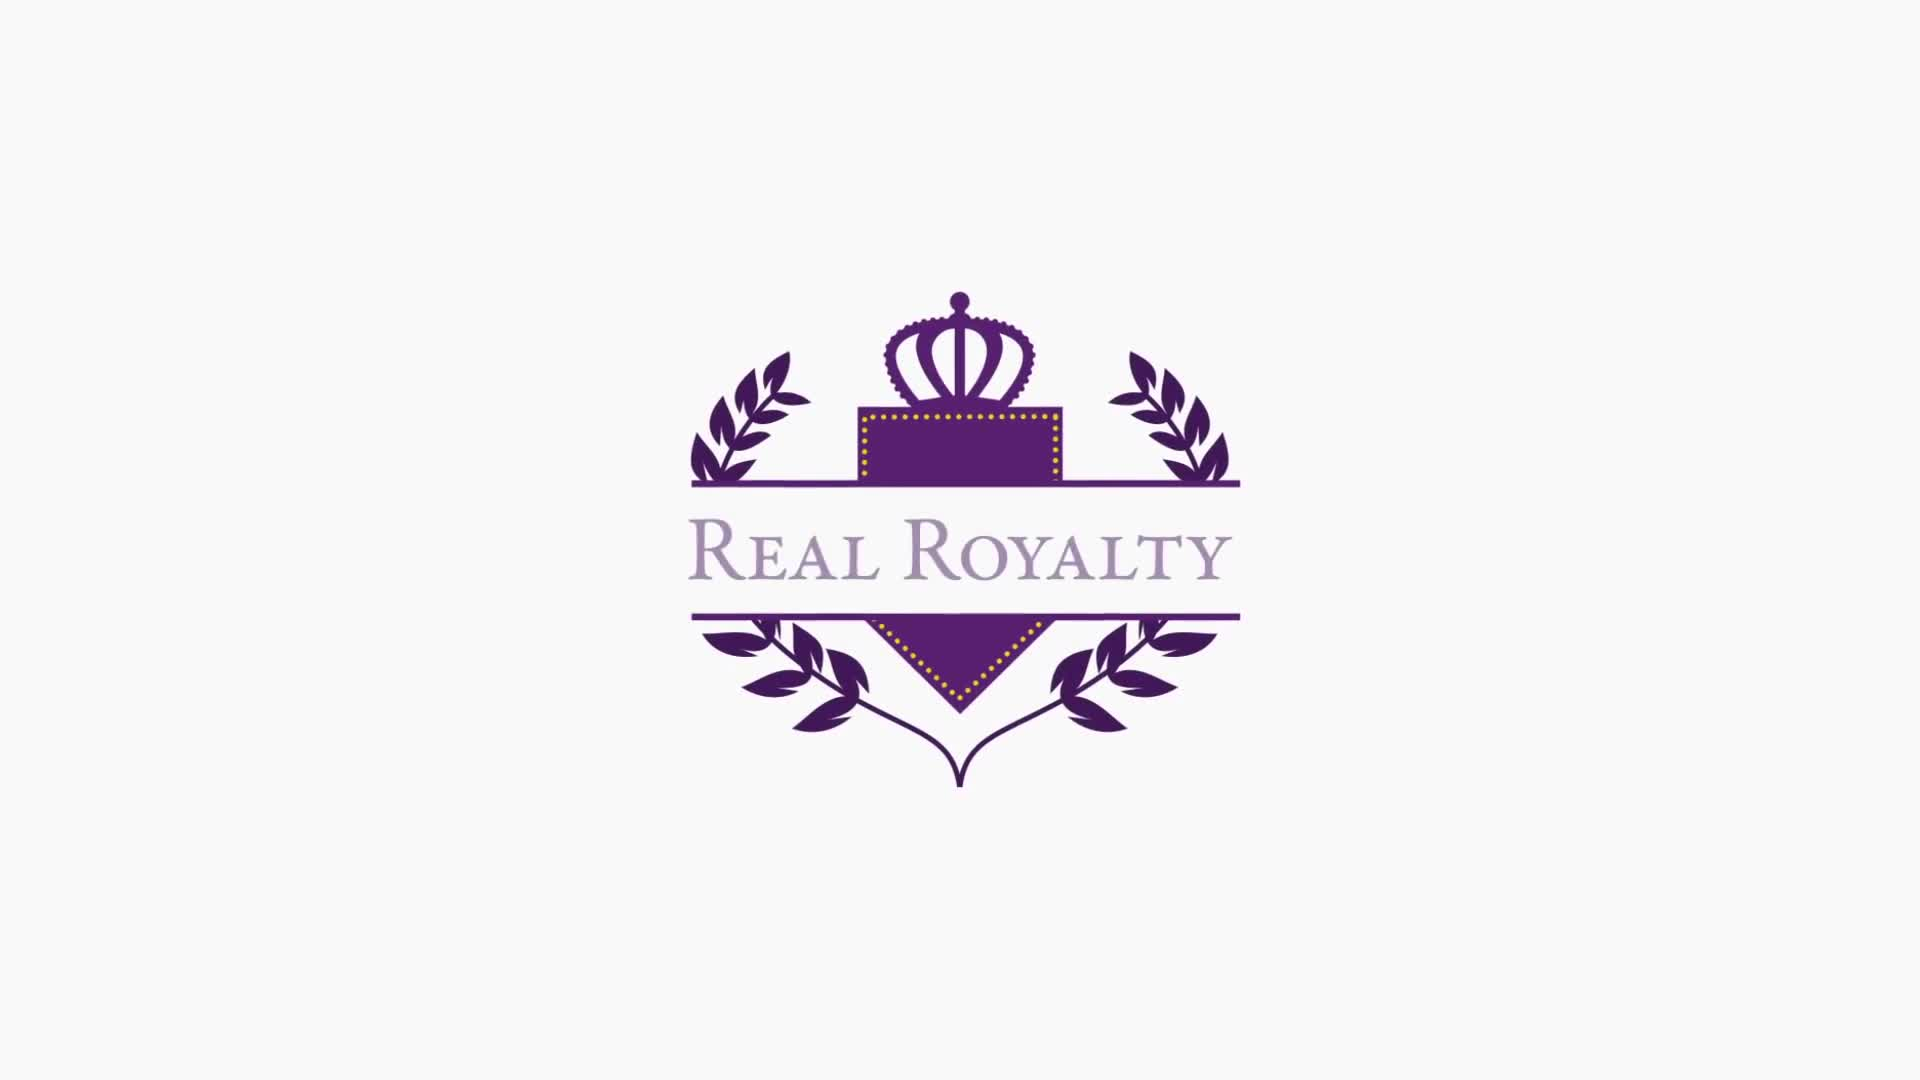 Boudicca: The Celtic Queen Who Defied Rome (A Mainstream Documentary, by: Real Royalty)